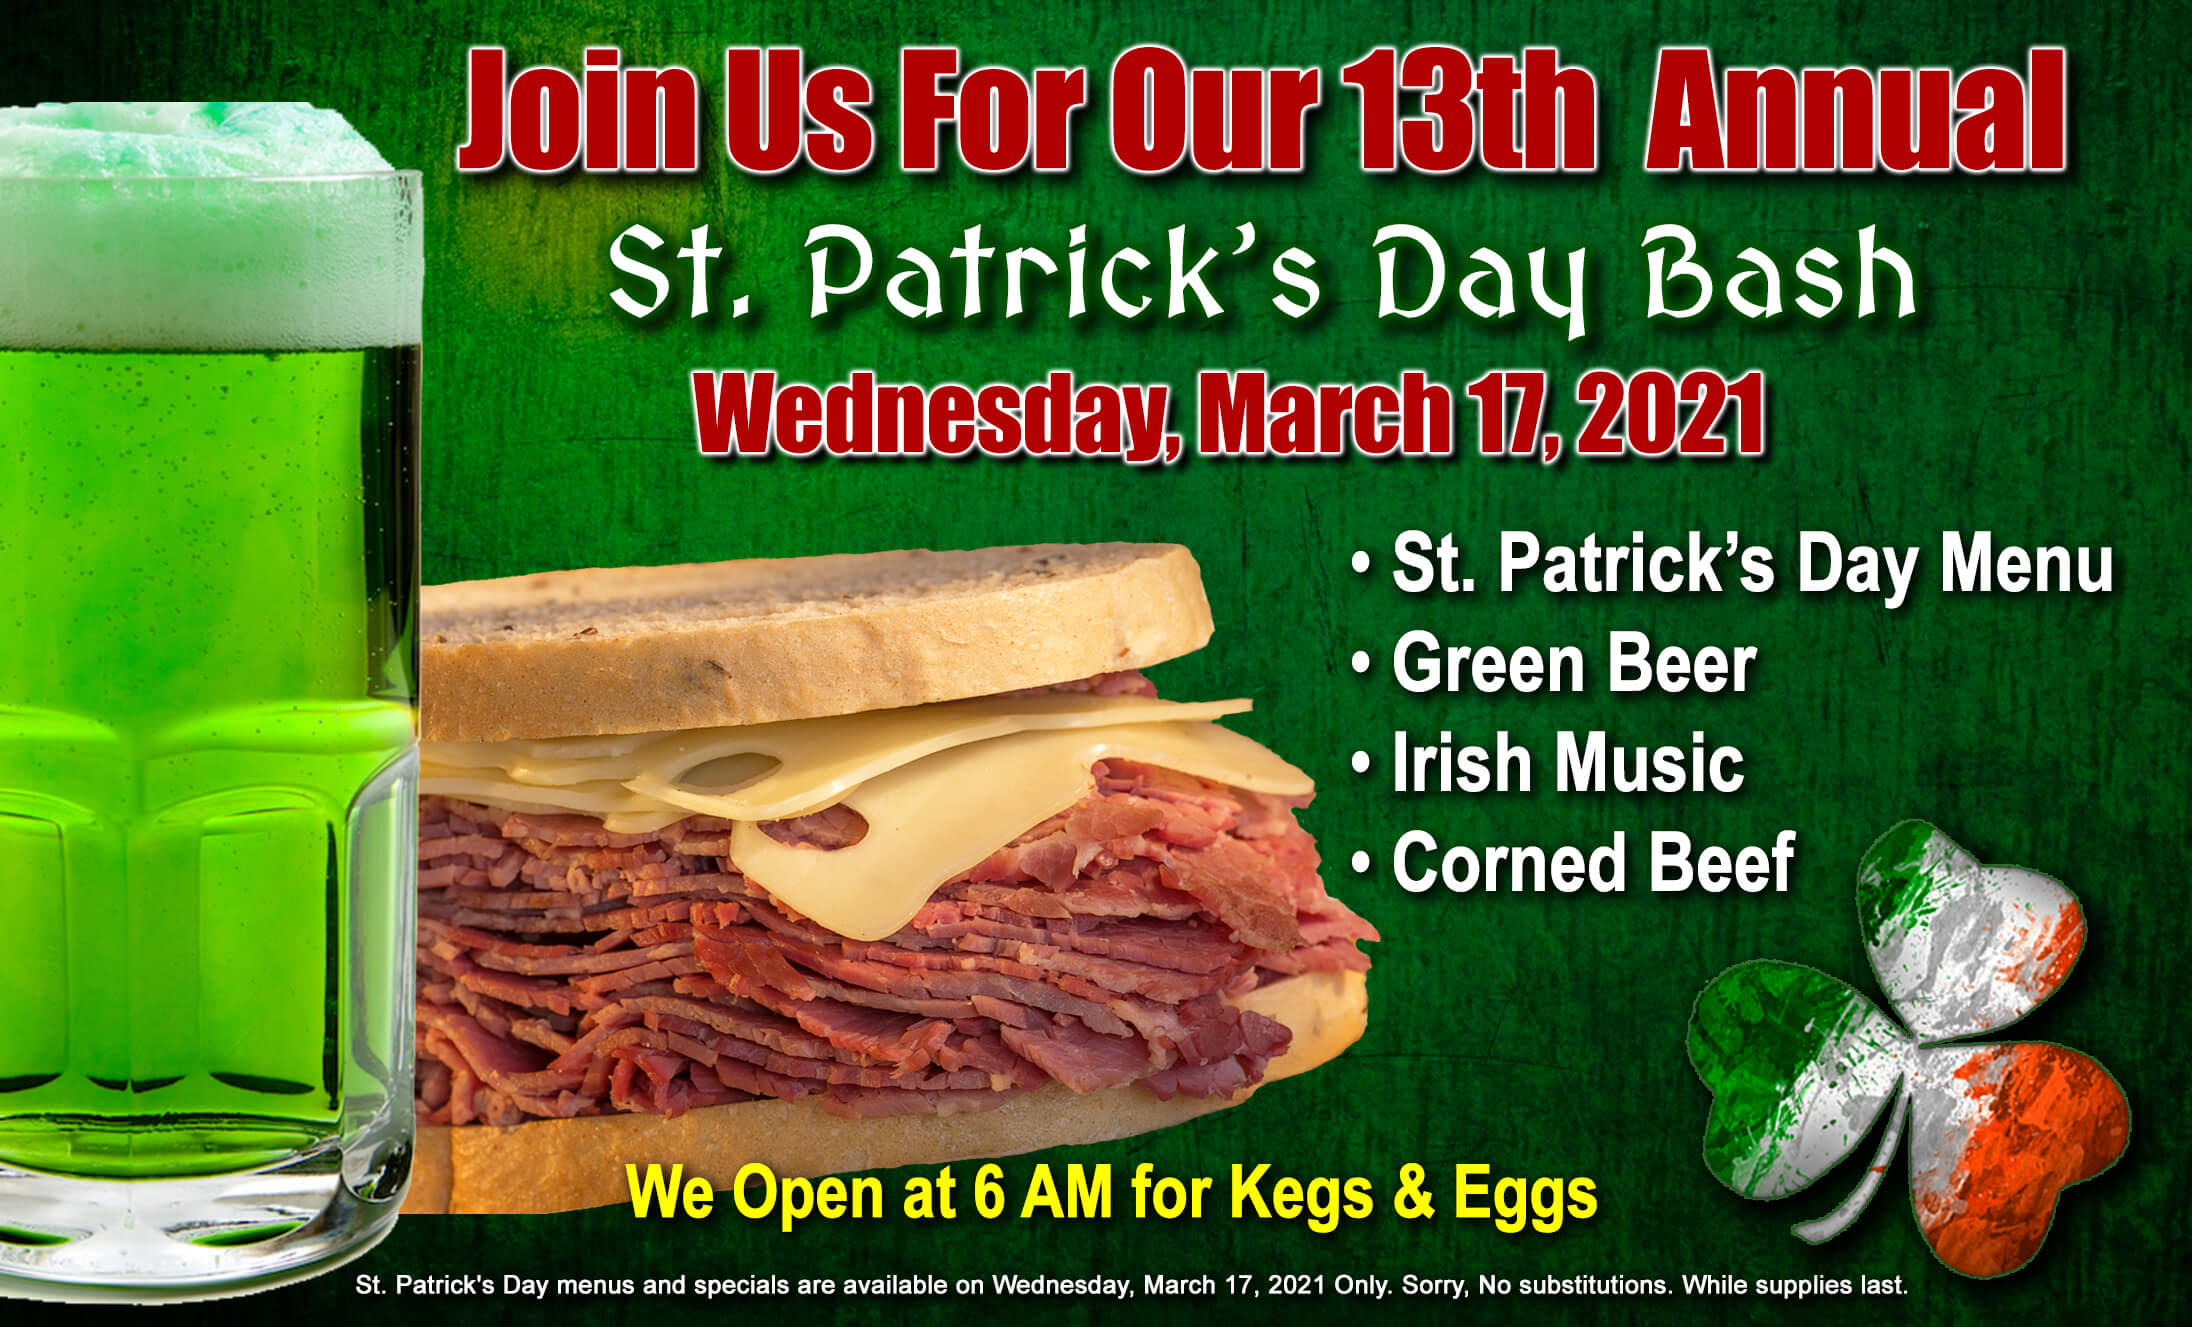 Join Us for our annual St Patrick's Day Bash, Wednesday March 17th.  We open at 6am for Kegs and Eggs.